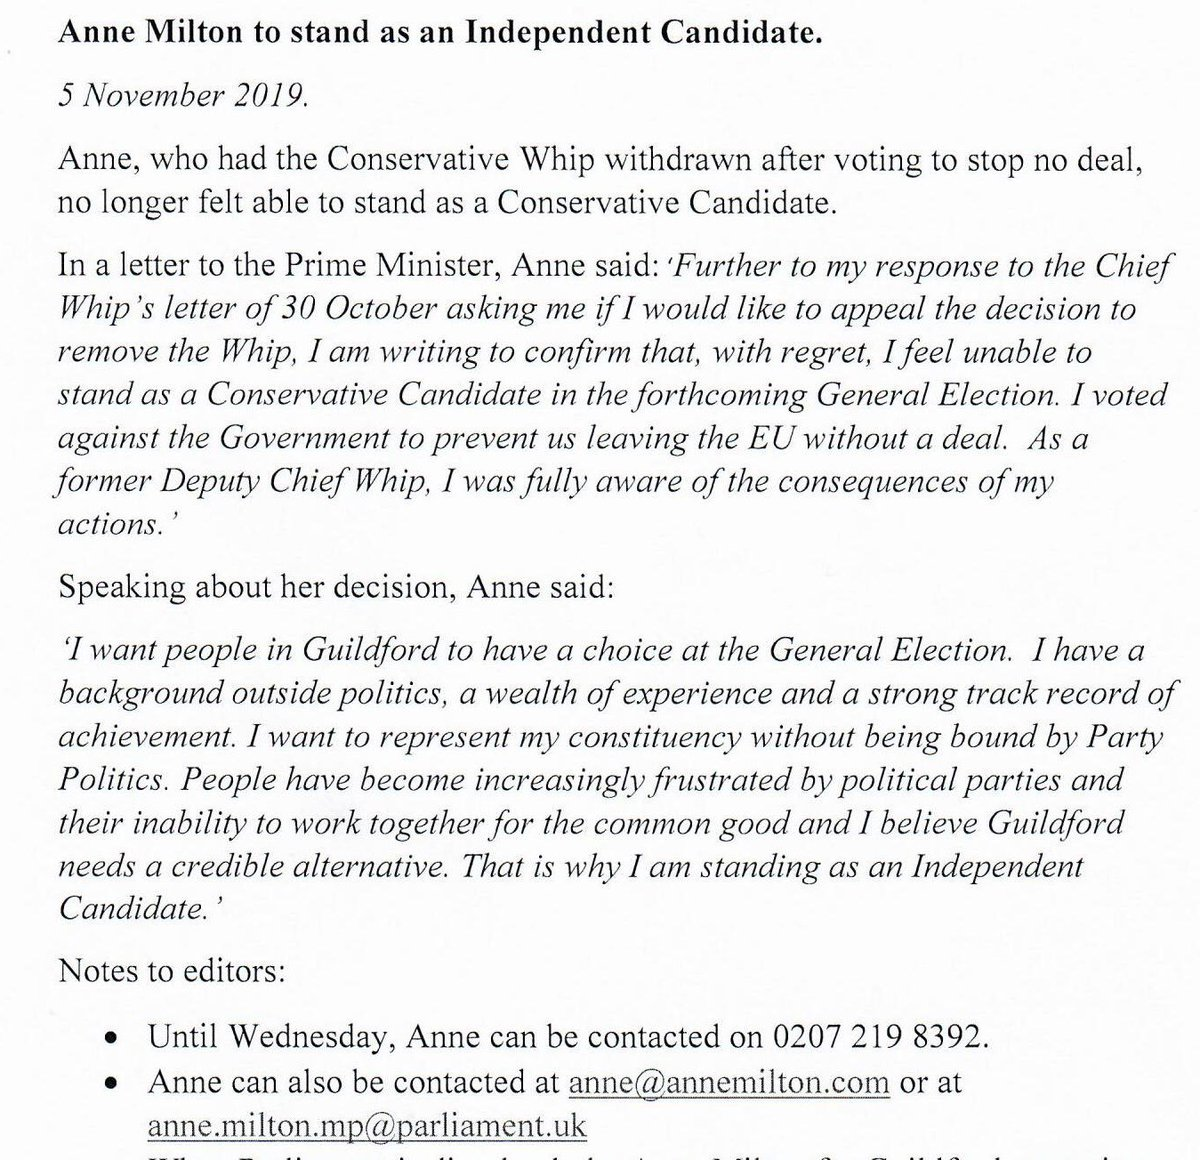 I wrote to the PM yesterday to tell him I felt unable to be a Conservative Candidate. I have considered very carefully what is best to do and will stand as an Independent Candidate at the next General Election. #AnnesStillStanding